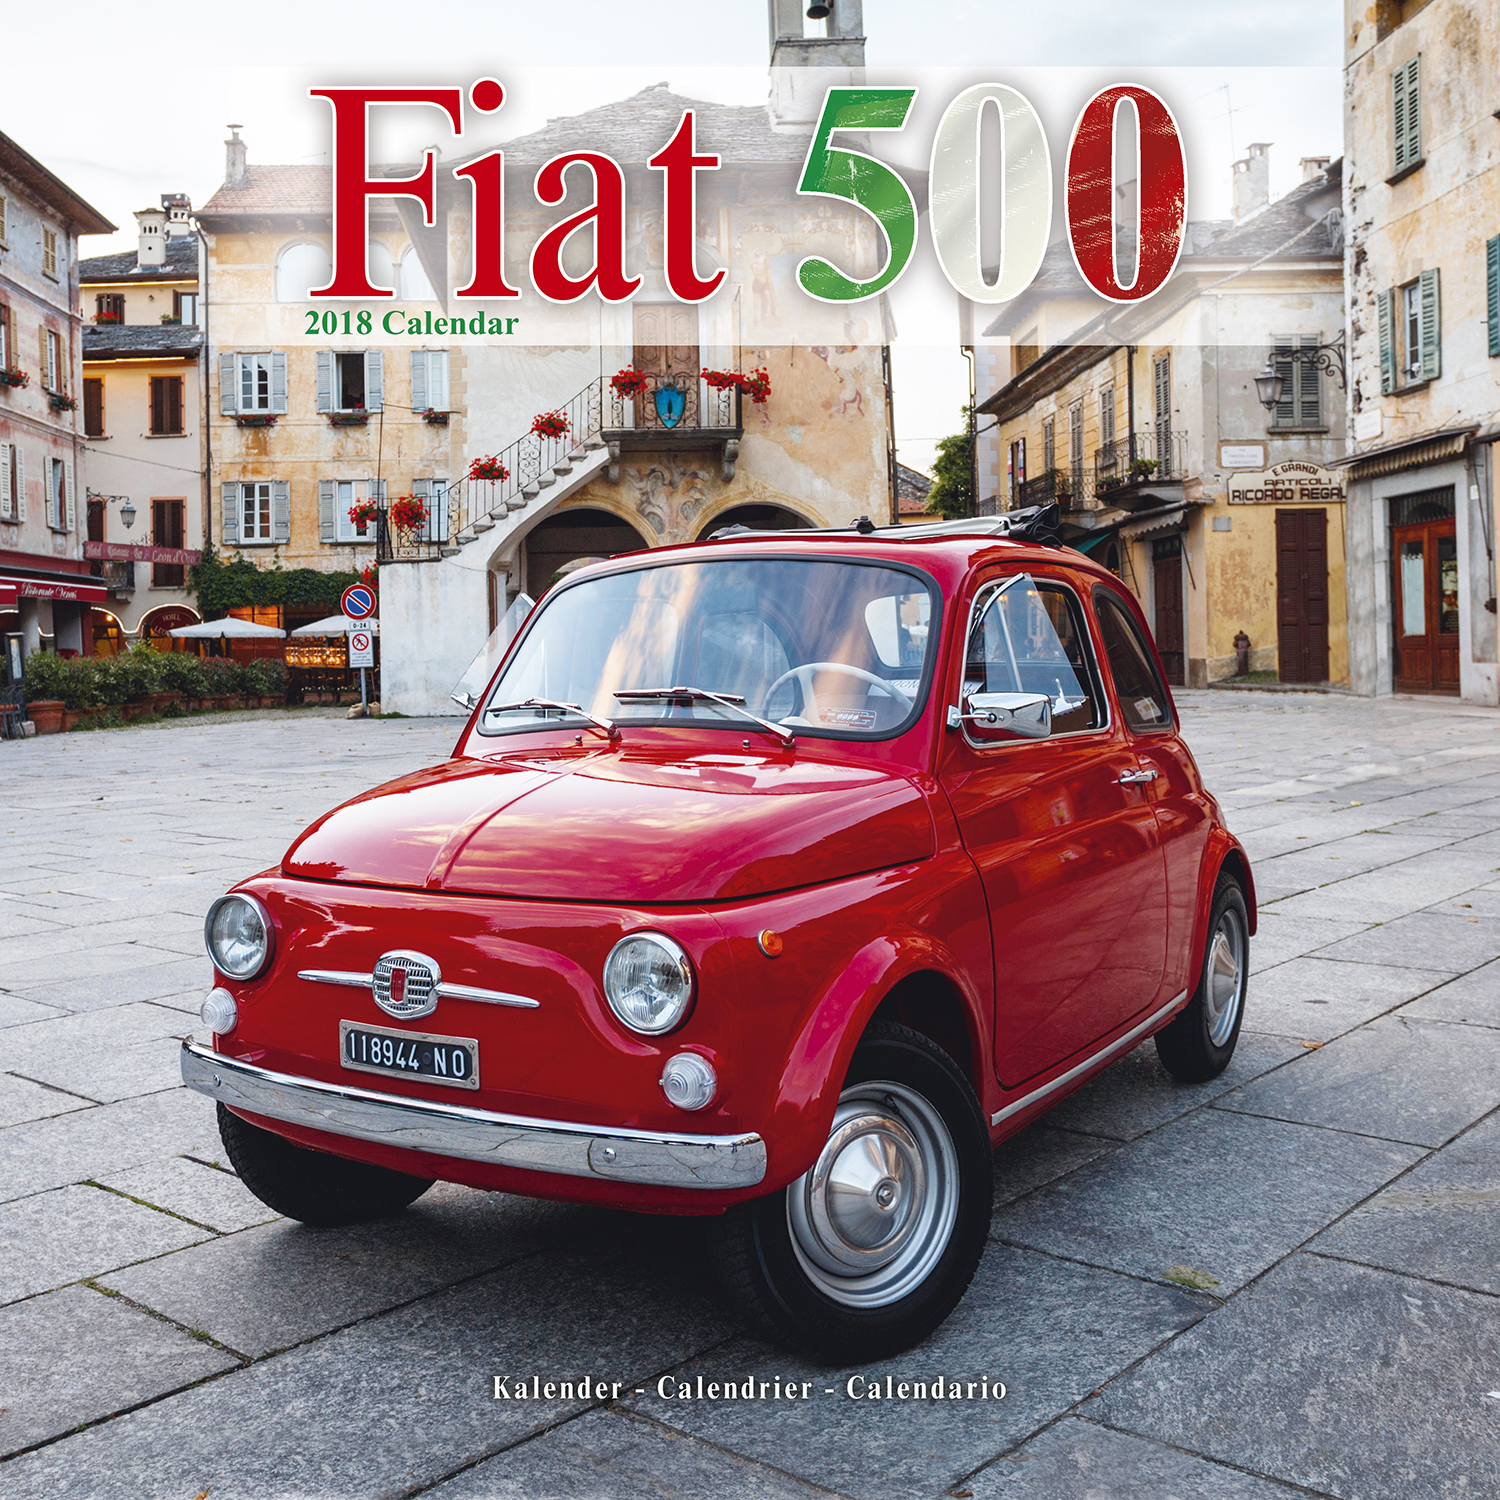 fiat 500 calendar 2018 pet prints inc. Black Bedroom Furniture Sets. Home Design Ideas